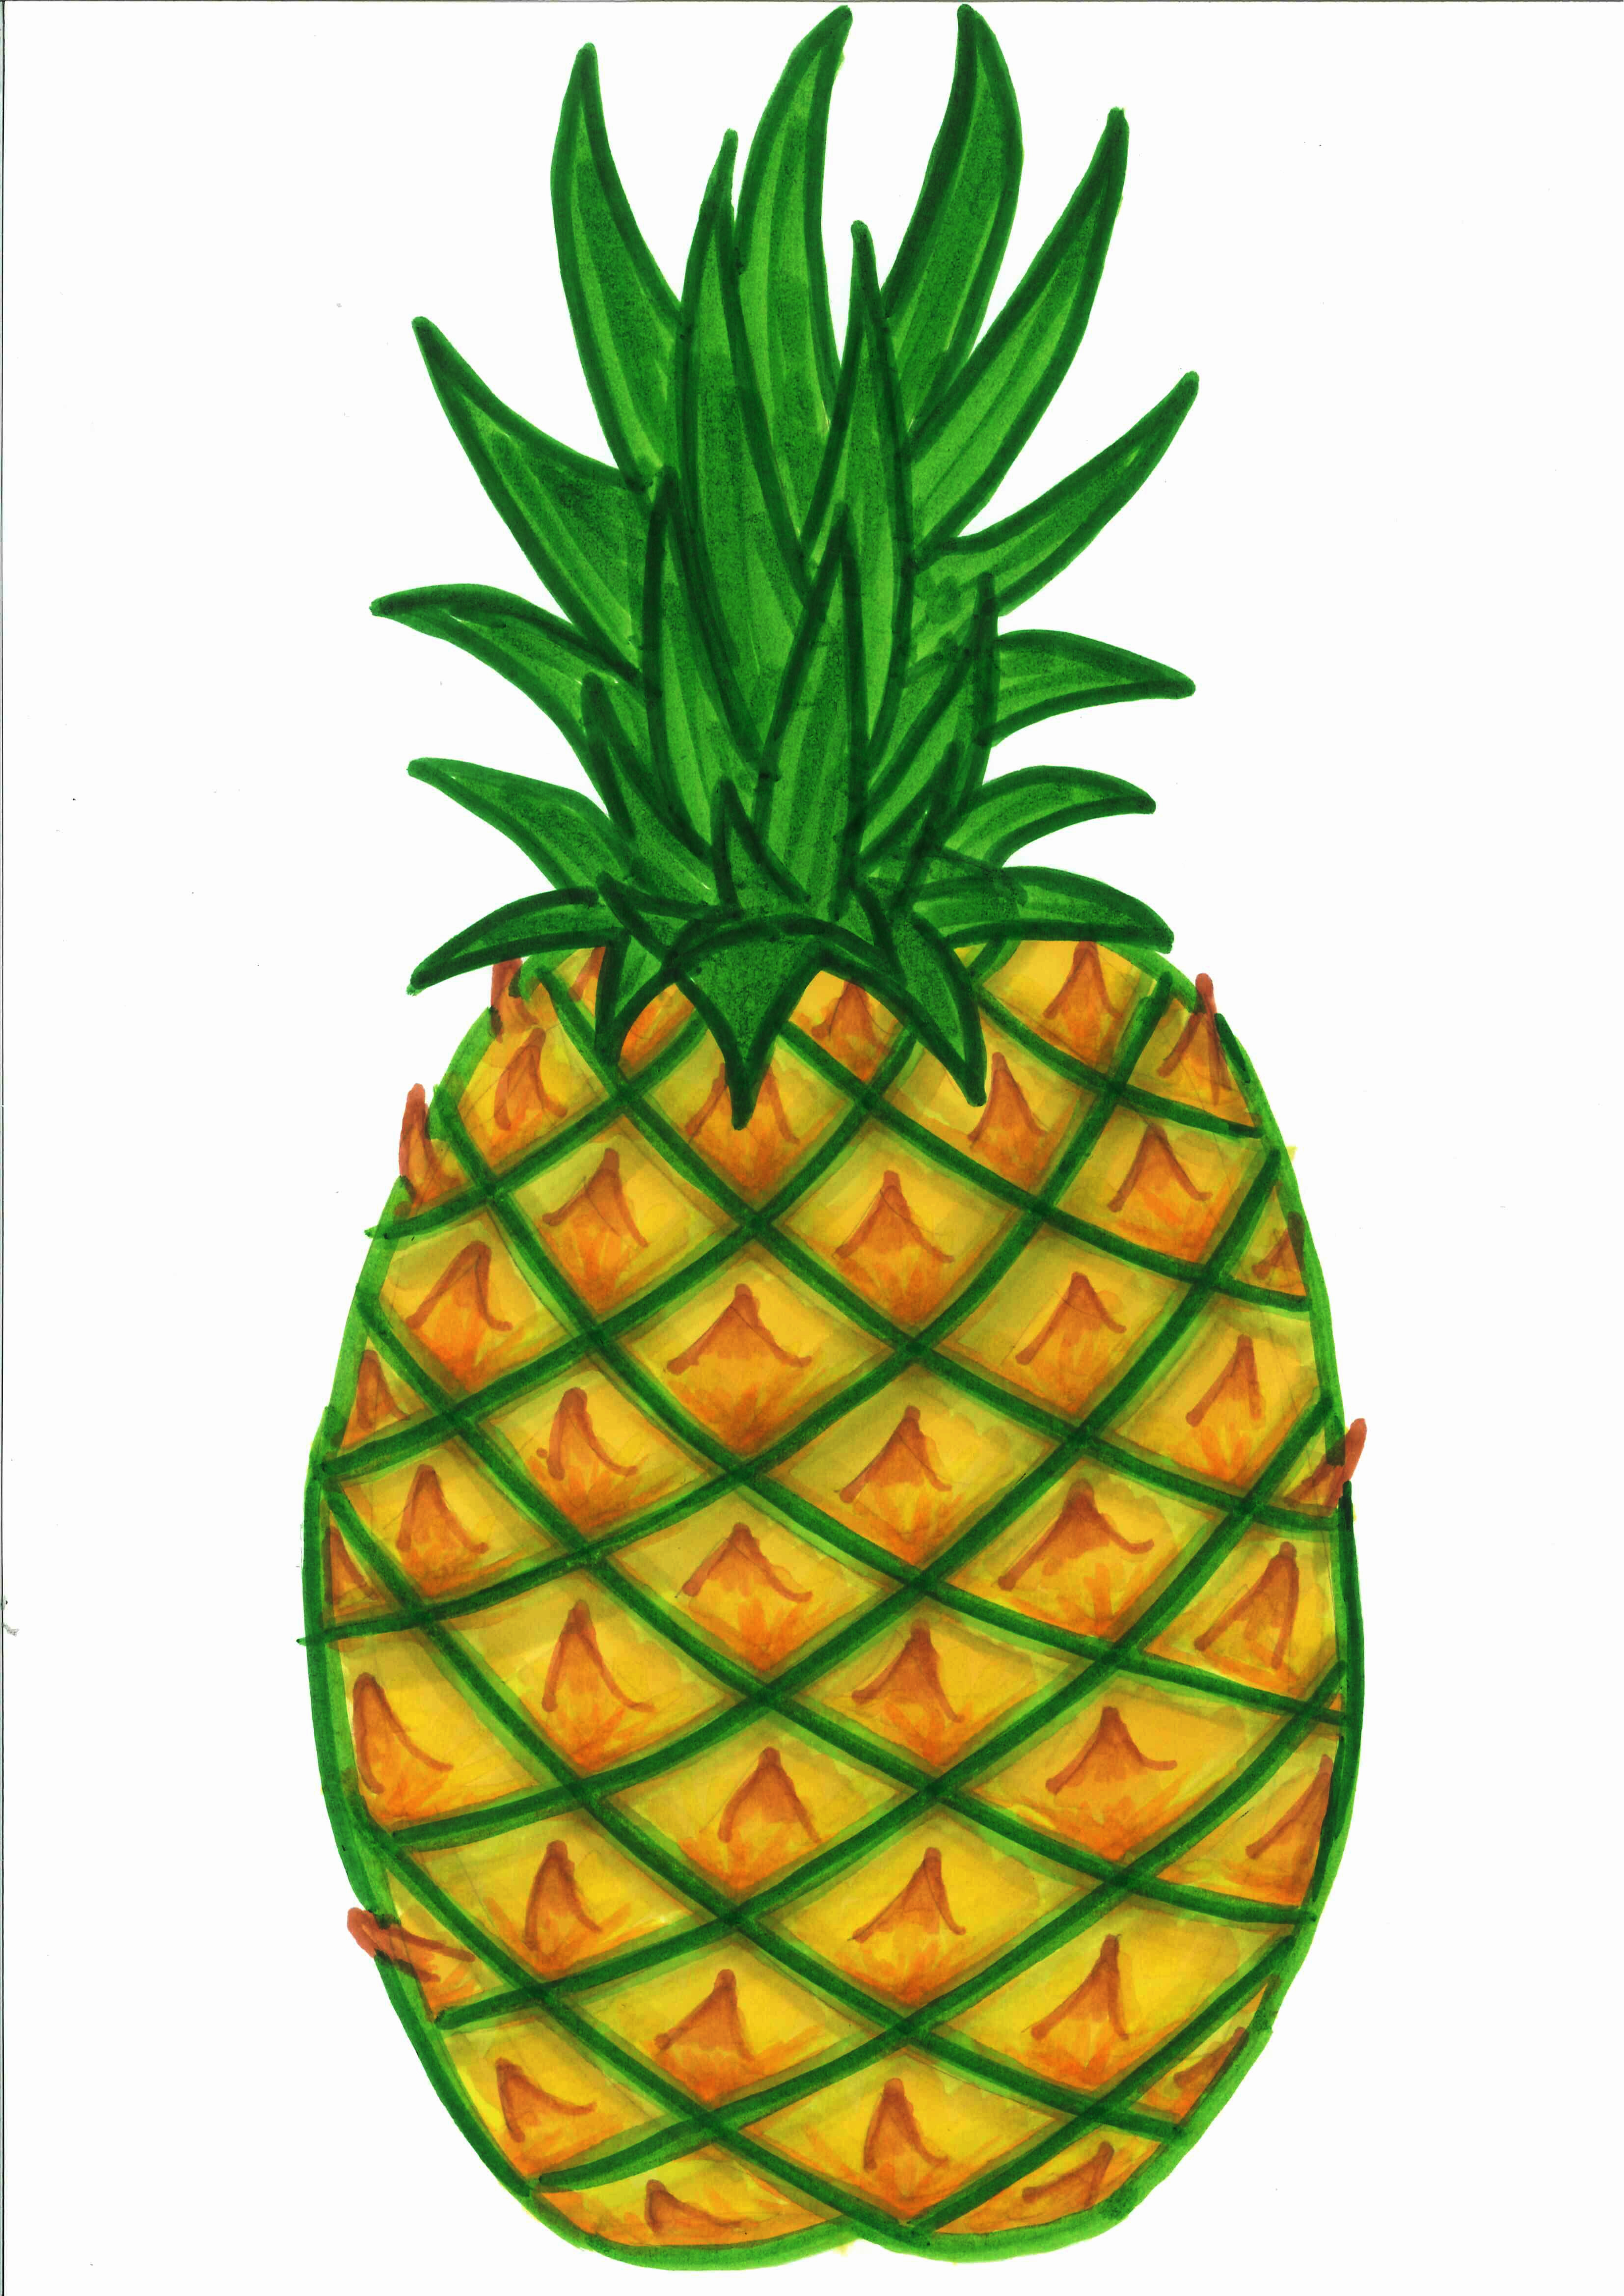 Pineapple Clipart Black And White-pineapple clipart black and white-0